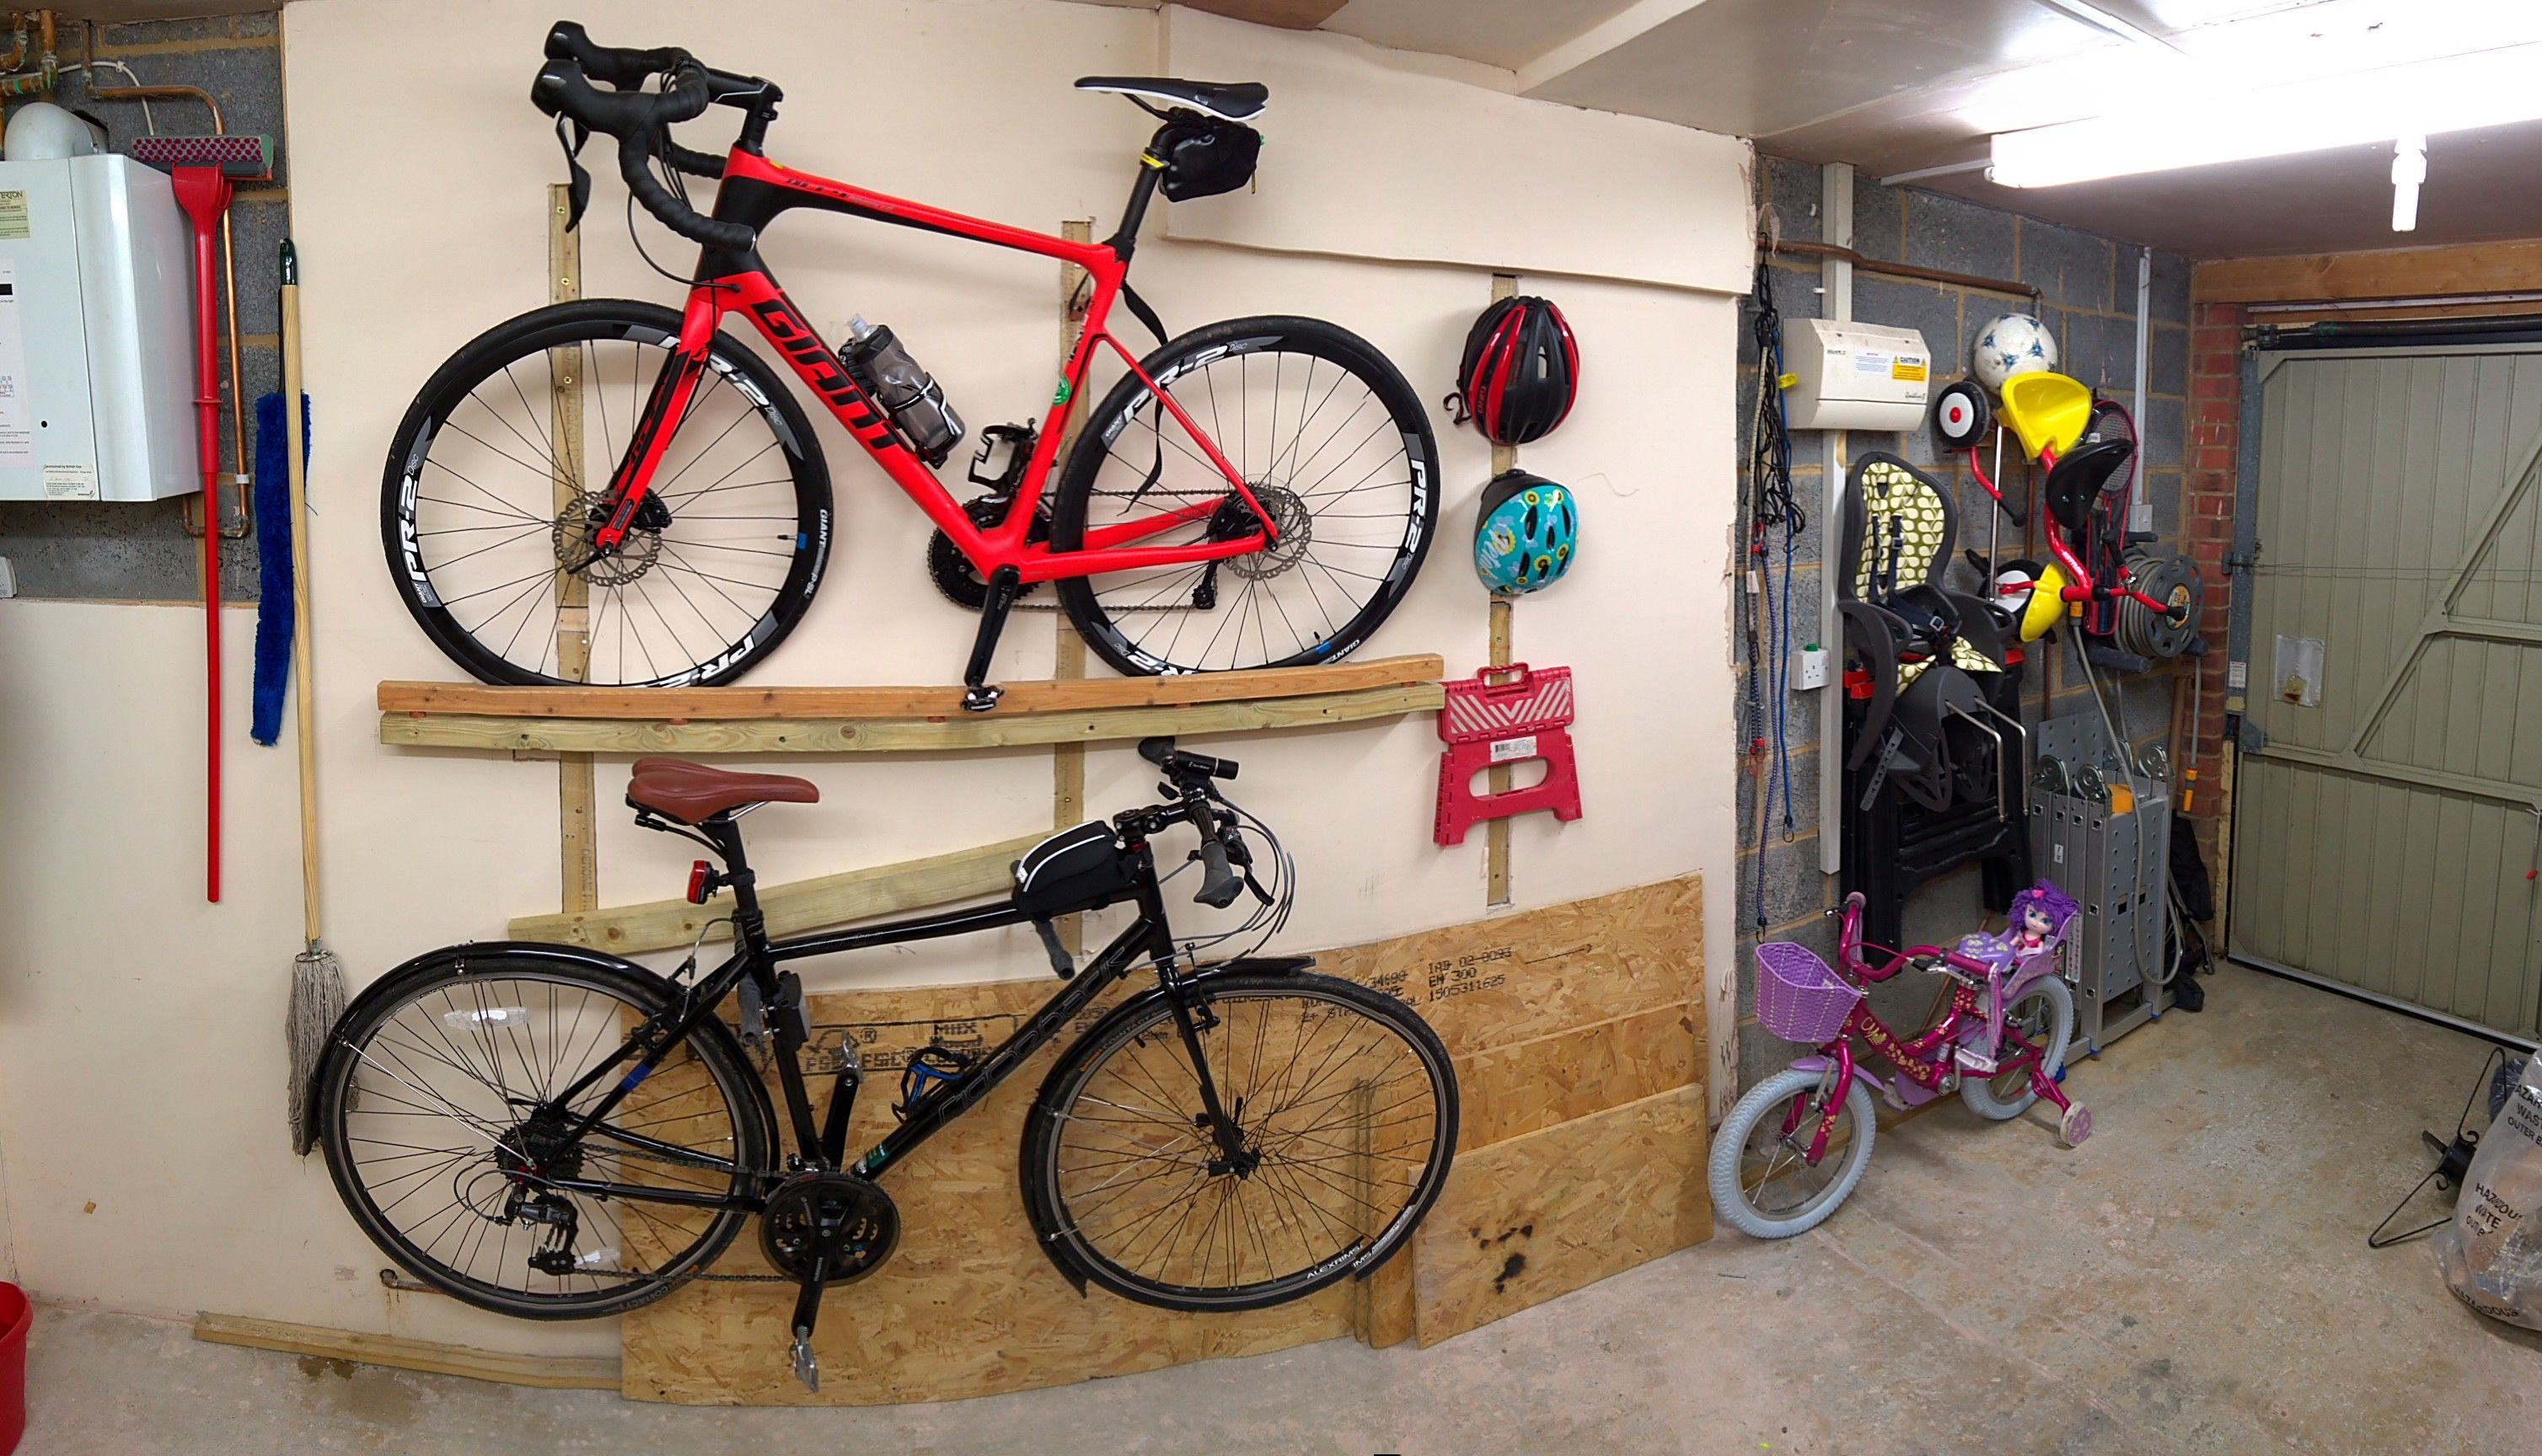 Two Bicycle Racks For Top Rack I Used 2X4 Bolted